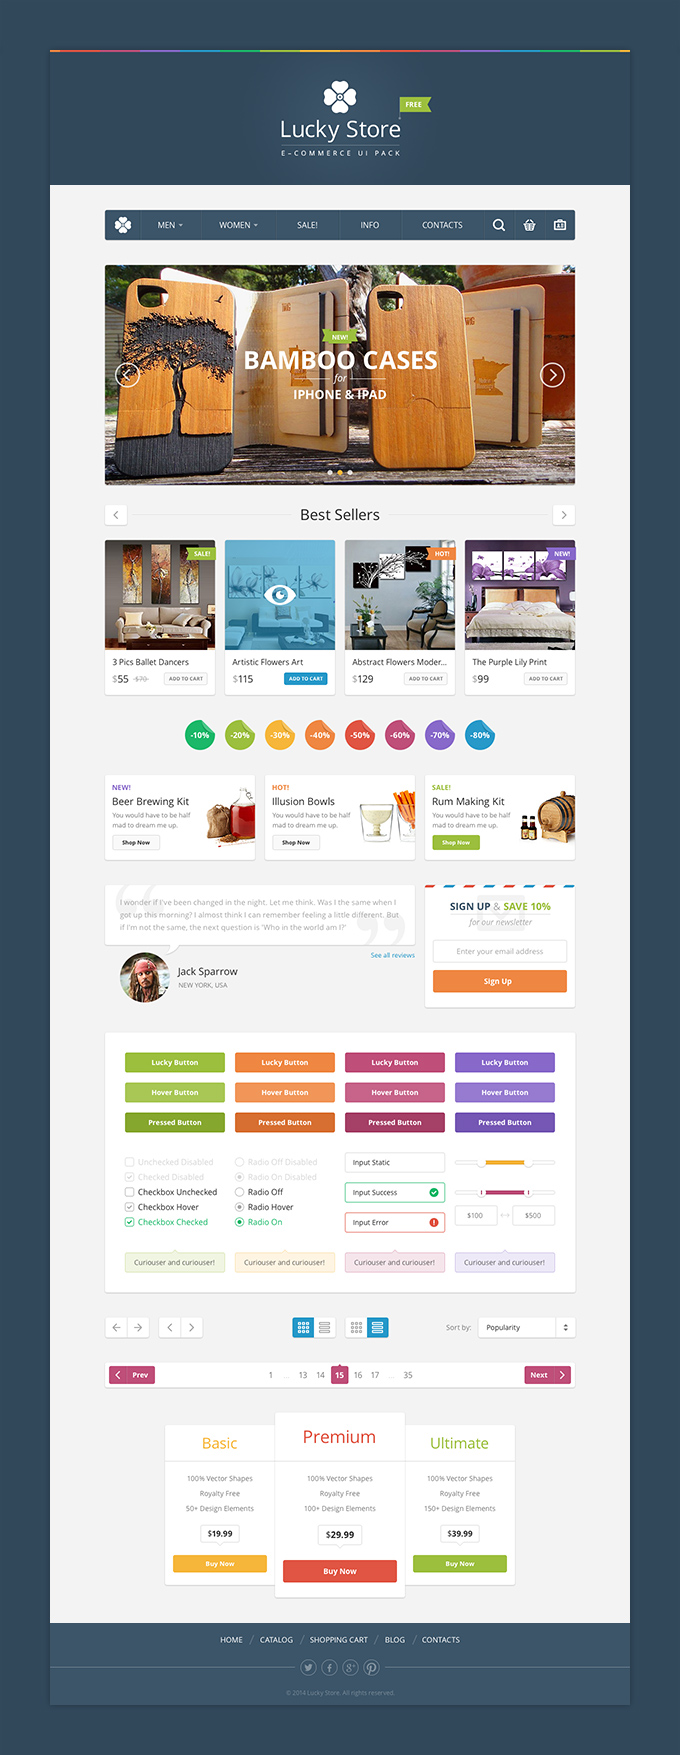 Lucky Store UI Free Photoshop Web UI Kits